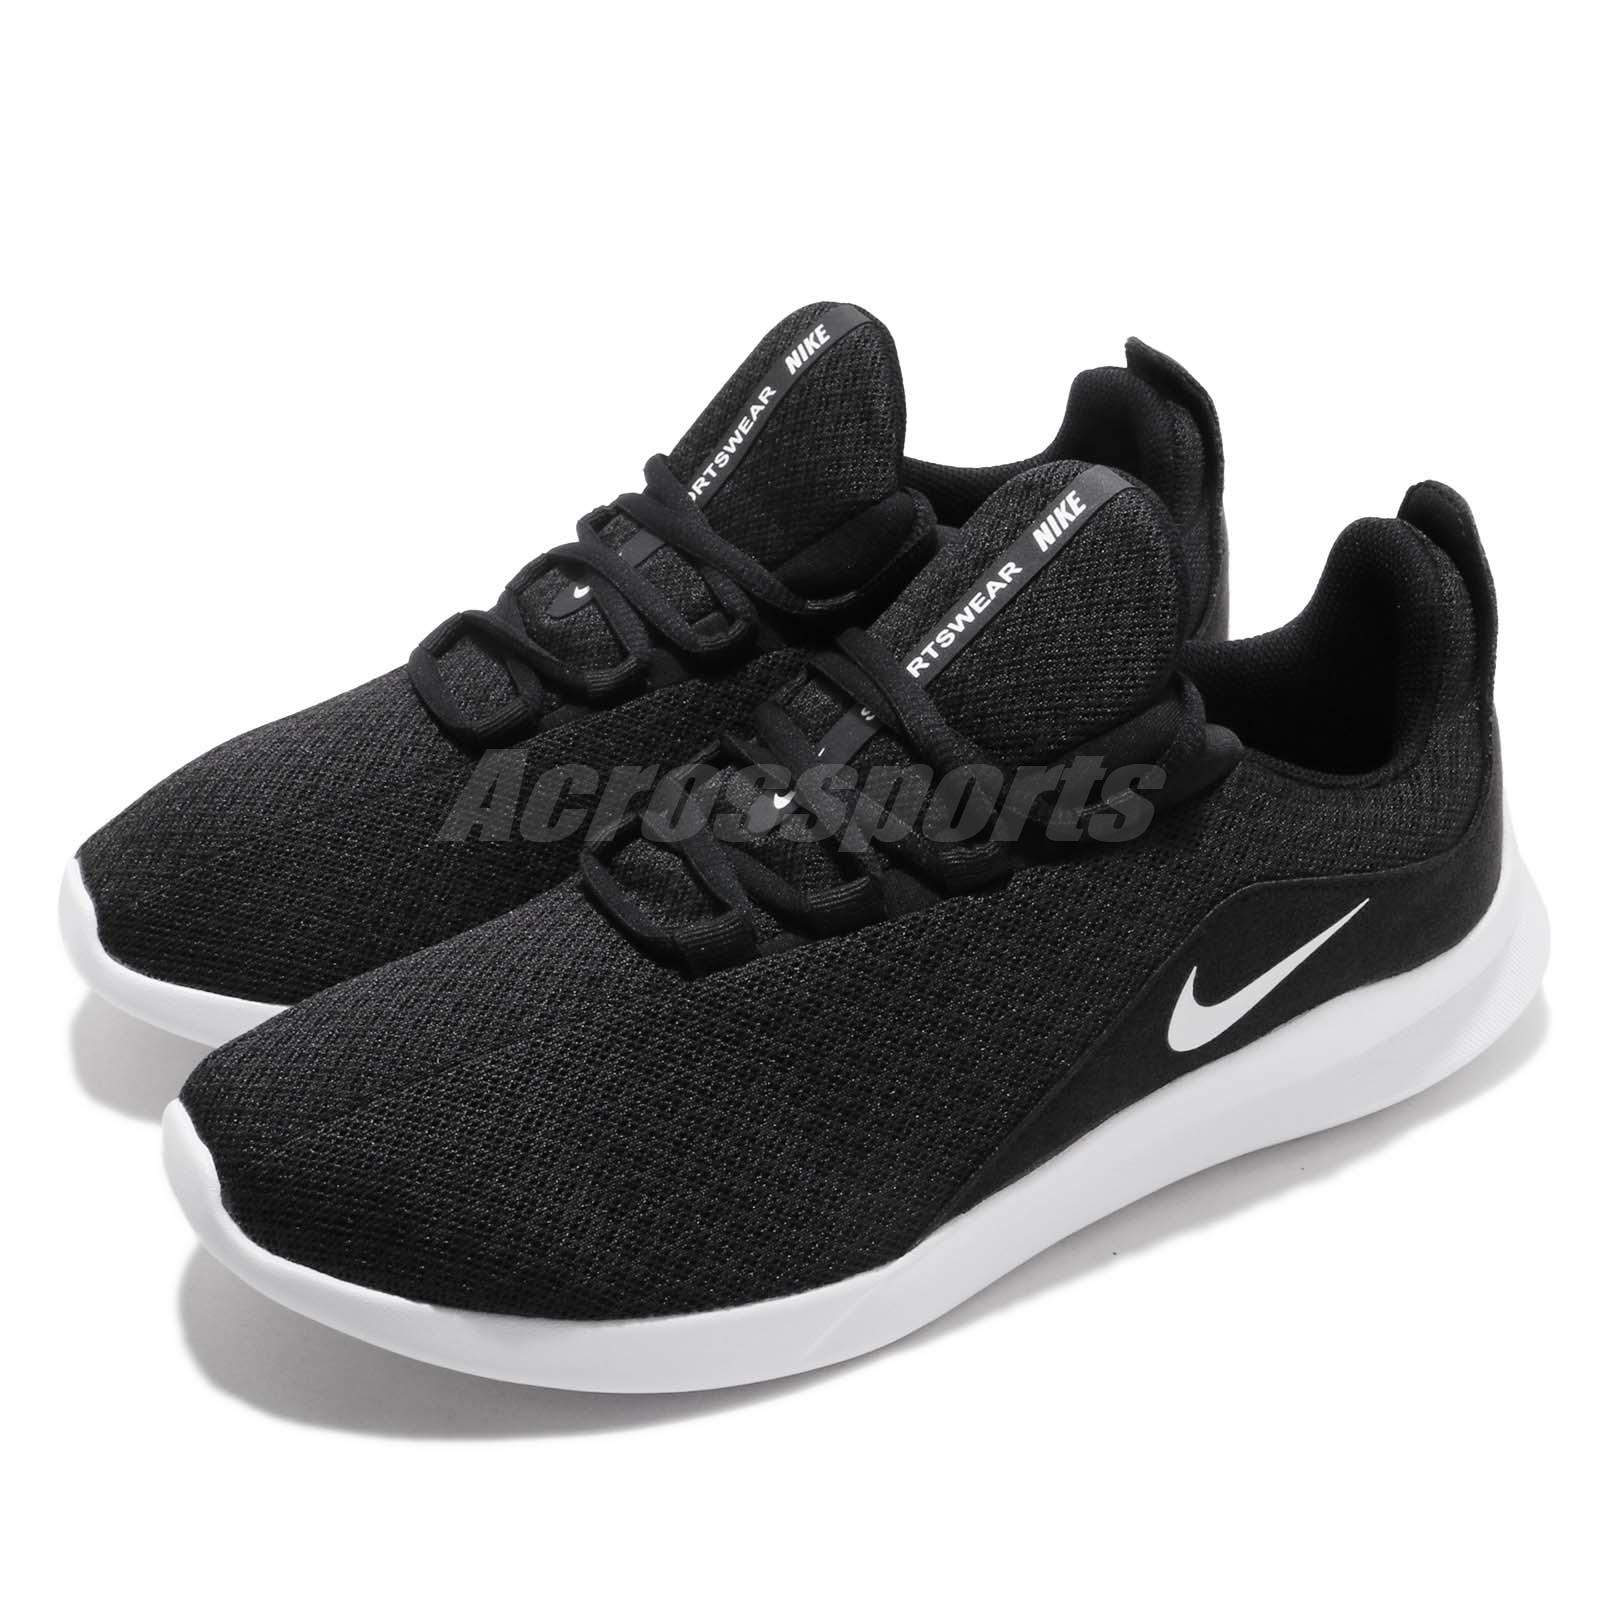 new style 71c65 a9474 Details about Nike Viale Black White Mens Running Shoes Sneakers AA2181-002